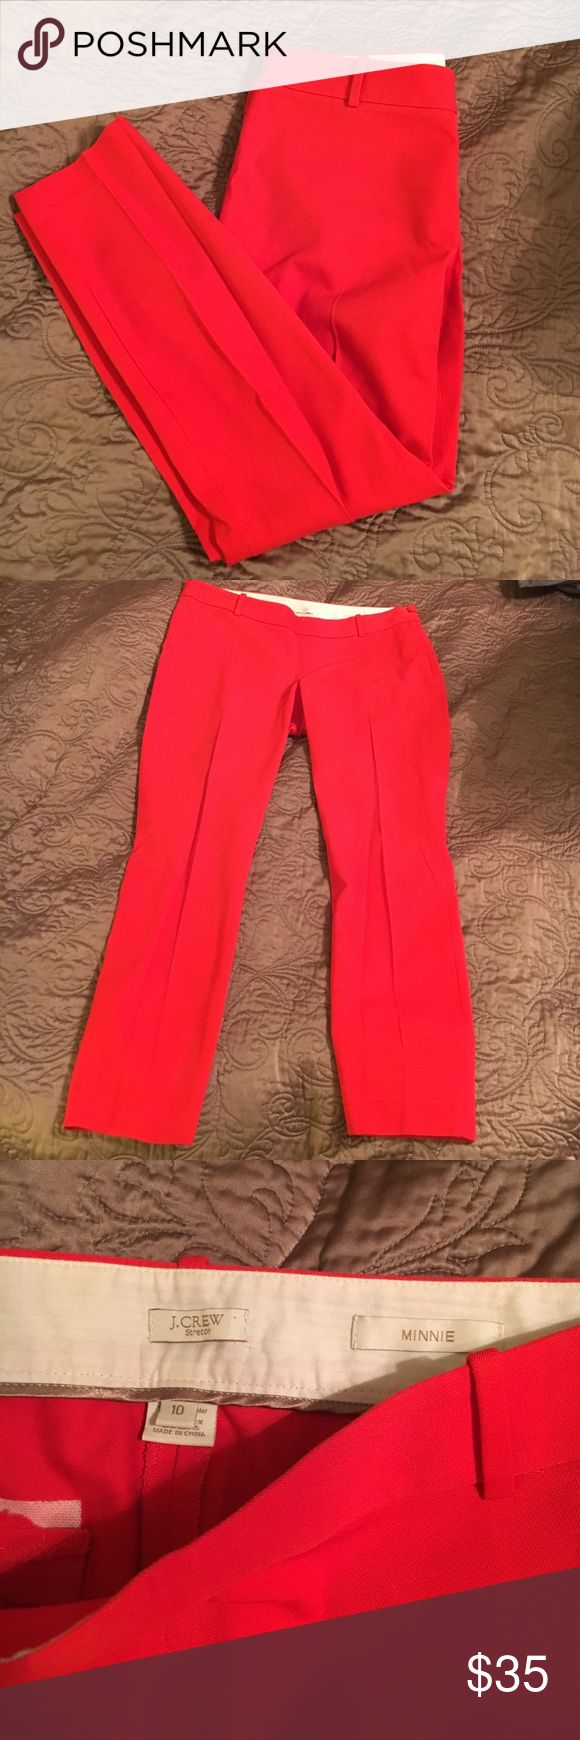 """J Crew Minnie red skinny twill pants size 10 EUC red skinny pants by J. Crew, Minnie style. Size 10. Has side zipper, no front pockets and faux back pockets. Waist across measures 16.5"""", hips 19.5"""", inseam 26.5"""". 95% cotton, 5% spandex J. Crew Pants Skinny"""